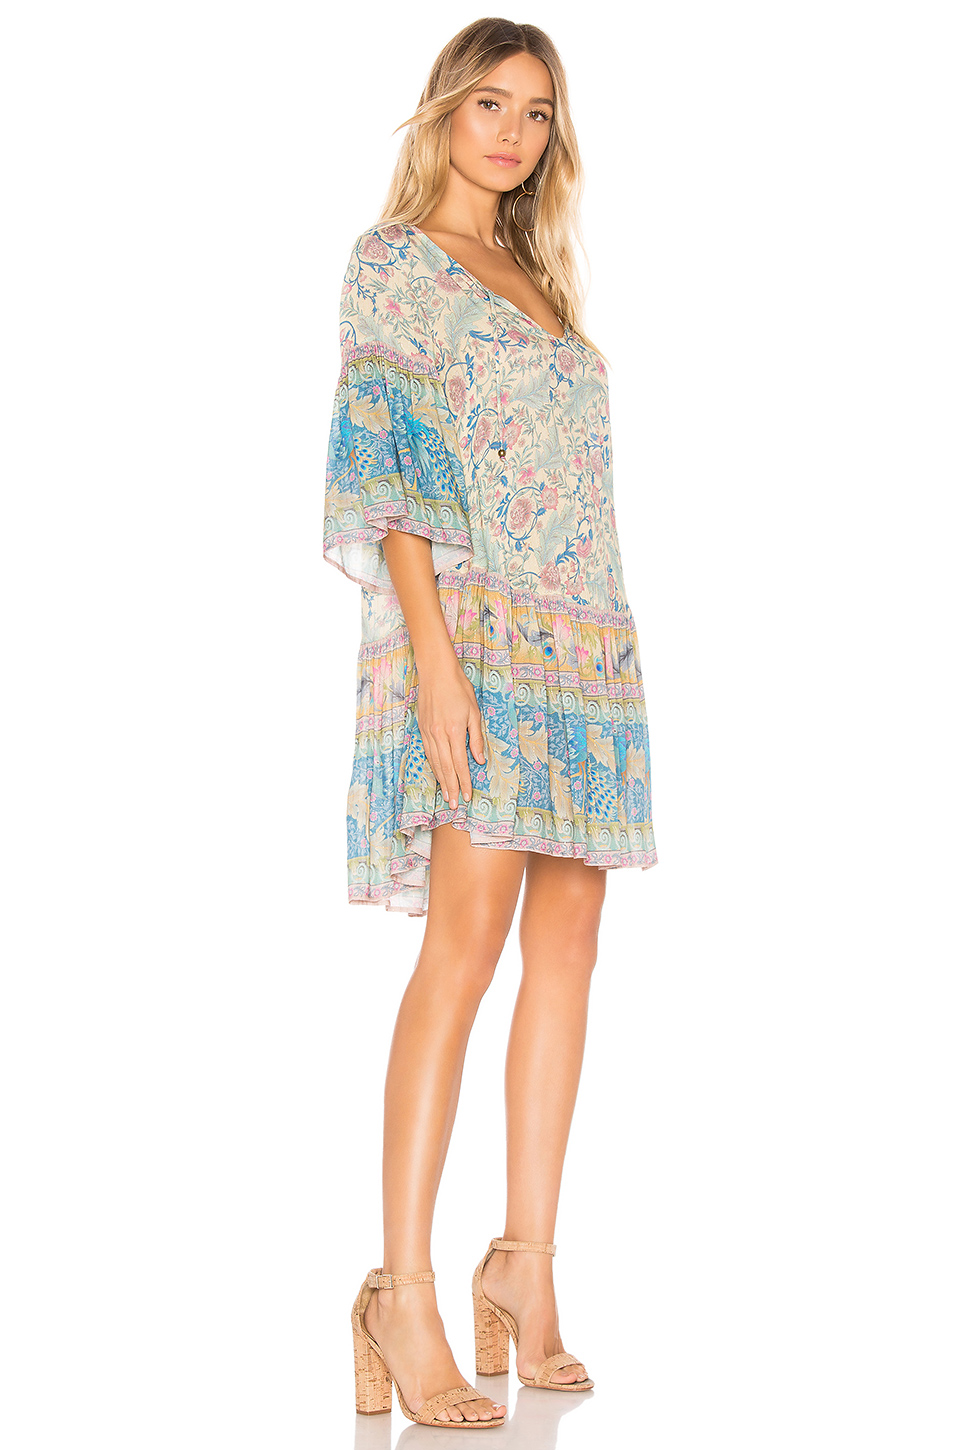 5dd7c617cbc3 Buy Original Spell & The Gypsy Collective Oasis Mini Dress at ...